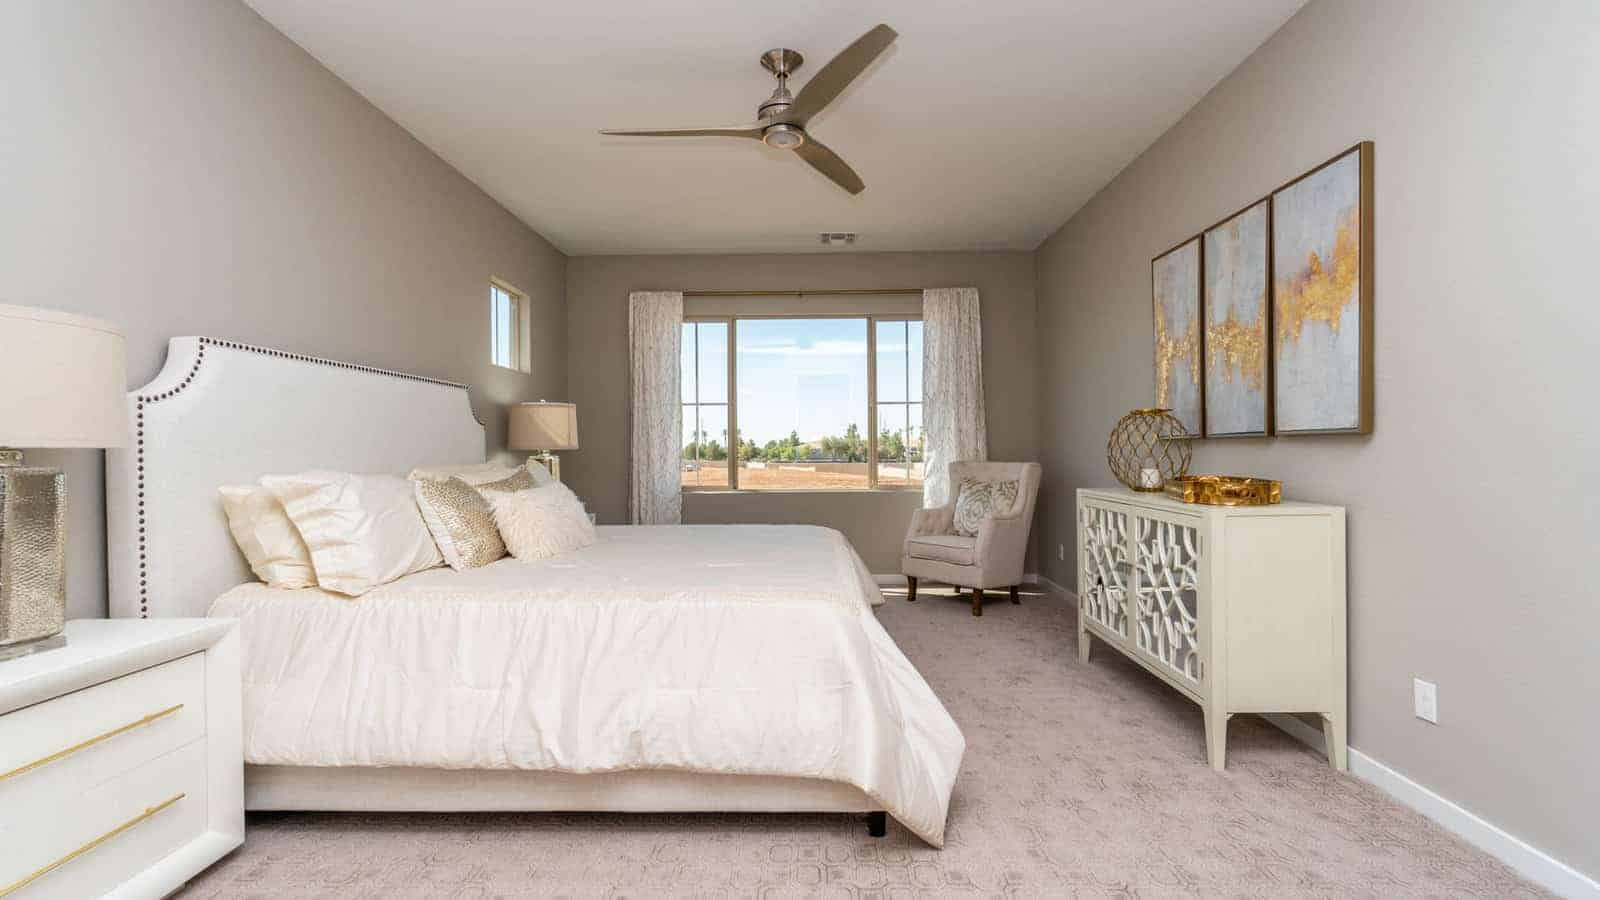 Bedroom of EastPoint model built by Porchlight Homes, a new home builder in Gilbert AZ